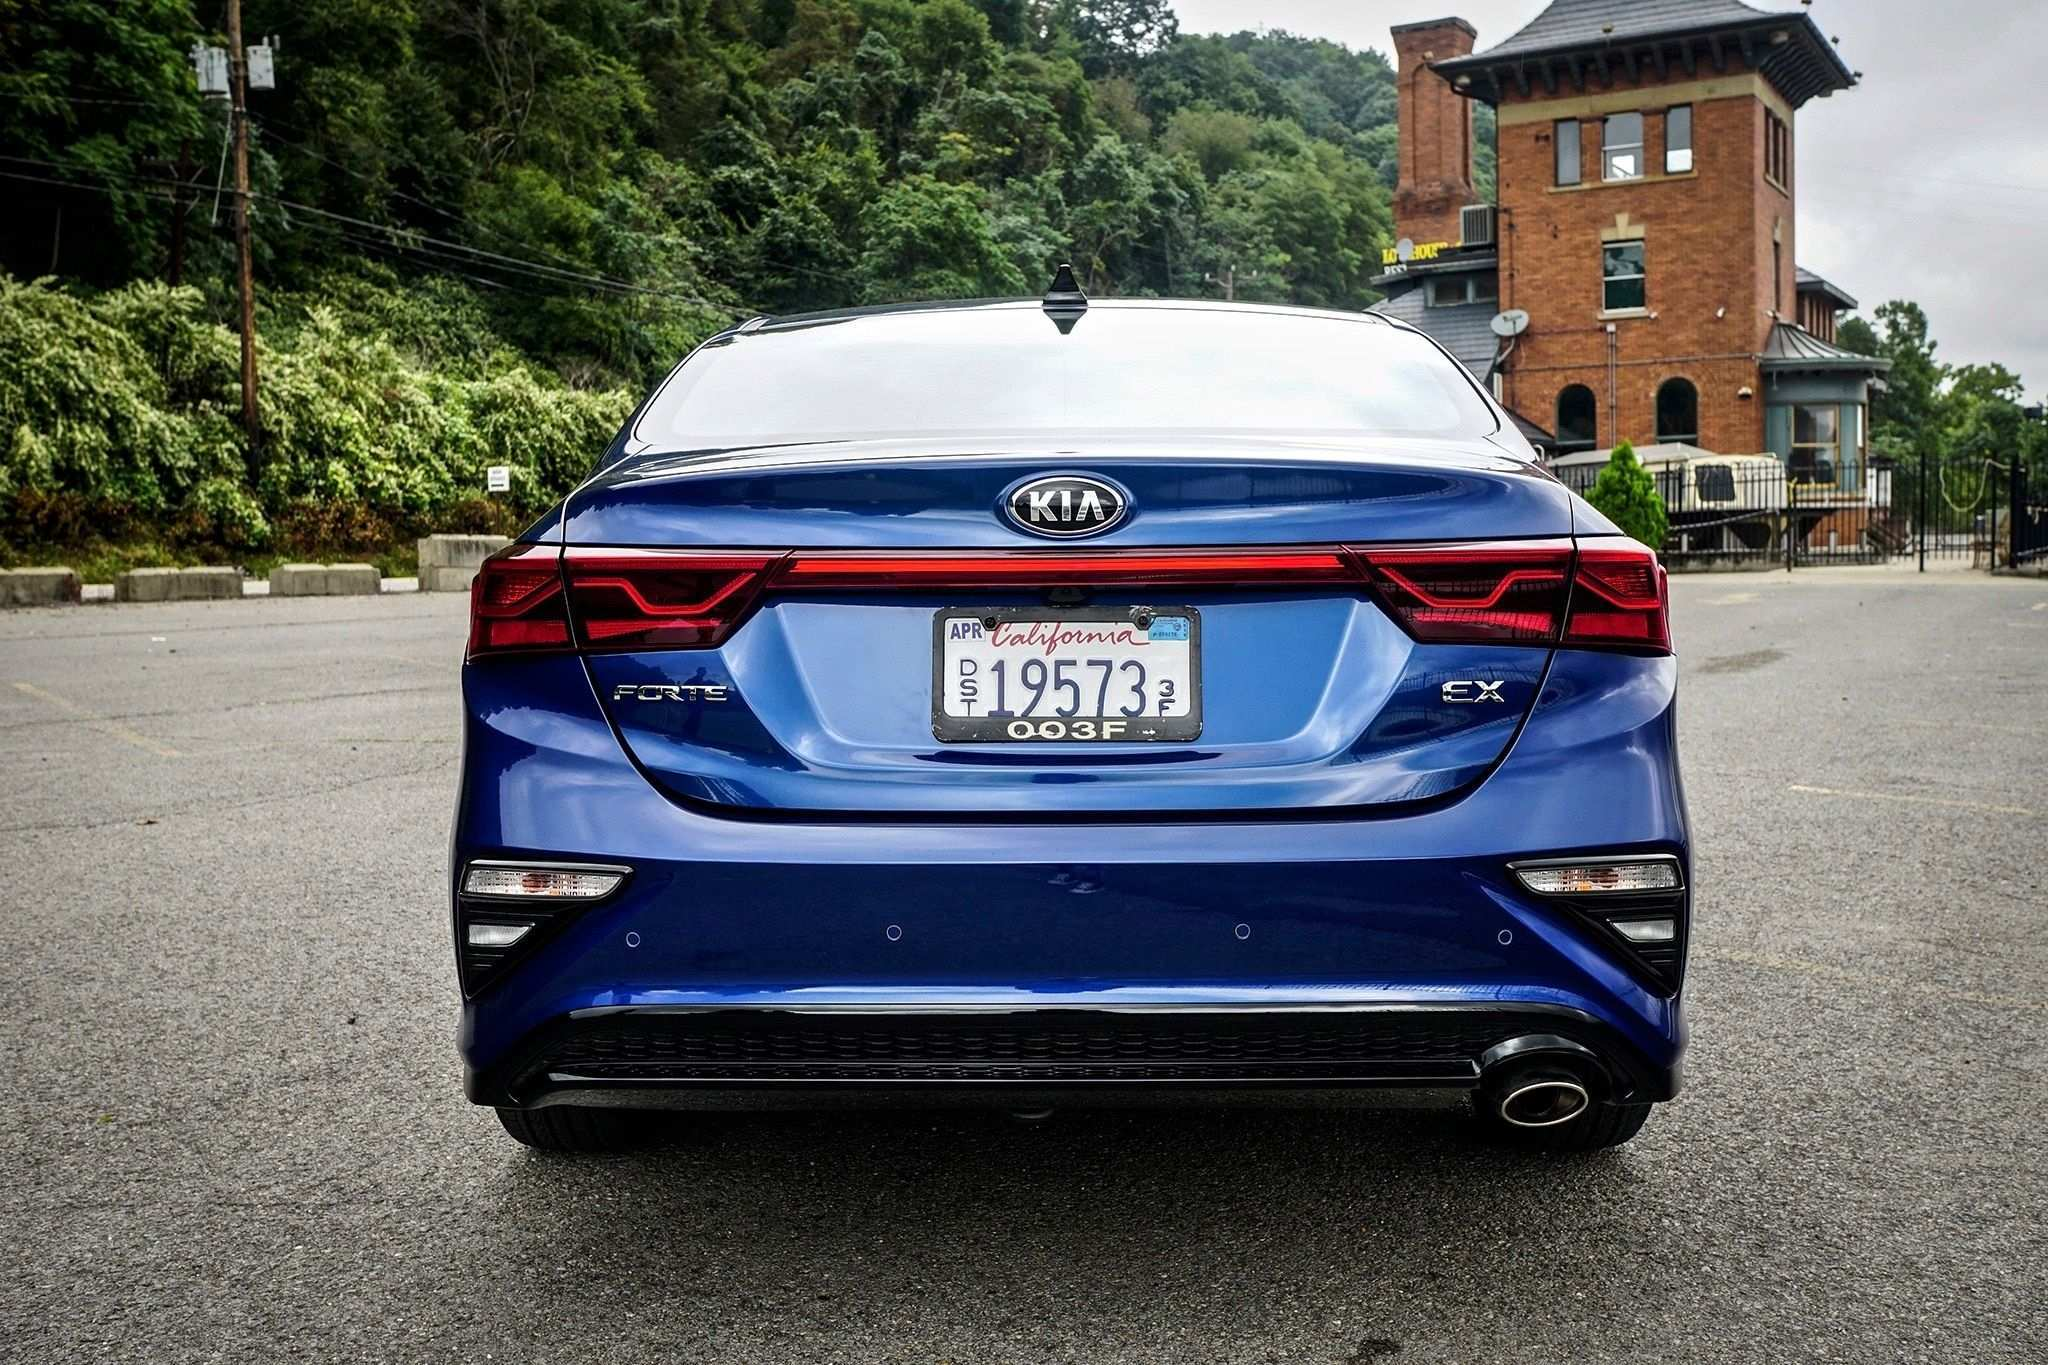 43 Best Review The Kia Forte 2019 Specs And Review Release for The Kia Forte 2019 Specs And Review